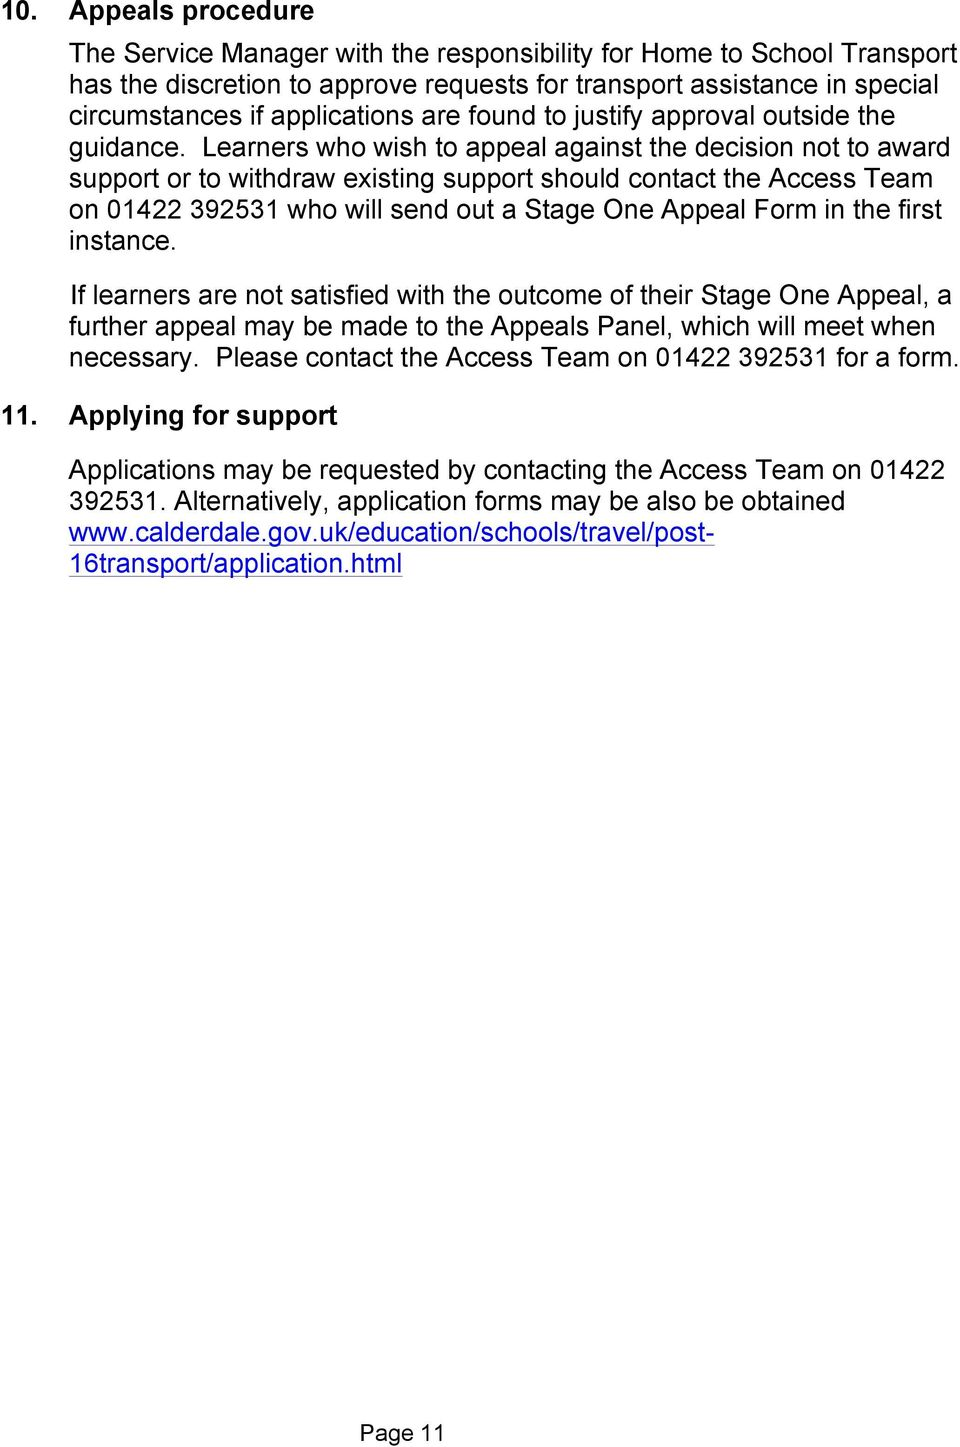 Learners who wish to appeal against the decision not to award support or to withdraw existing support should contact the Access Team on 01422 392531 who will send out a Stage One Appeal Form in the